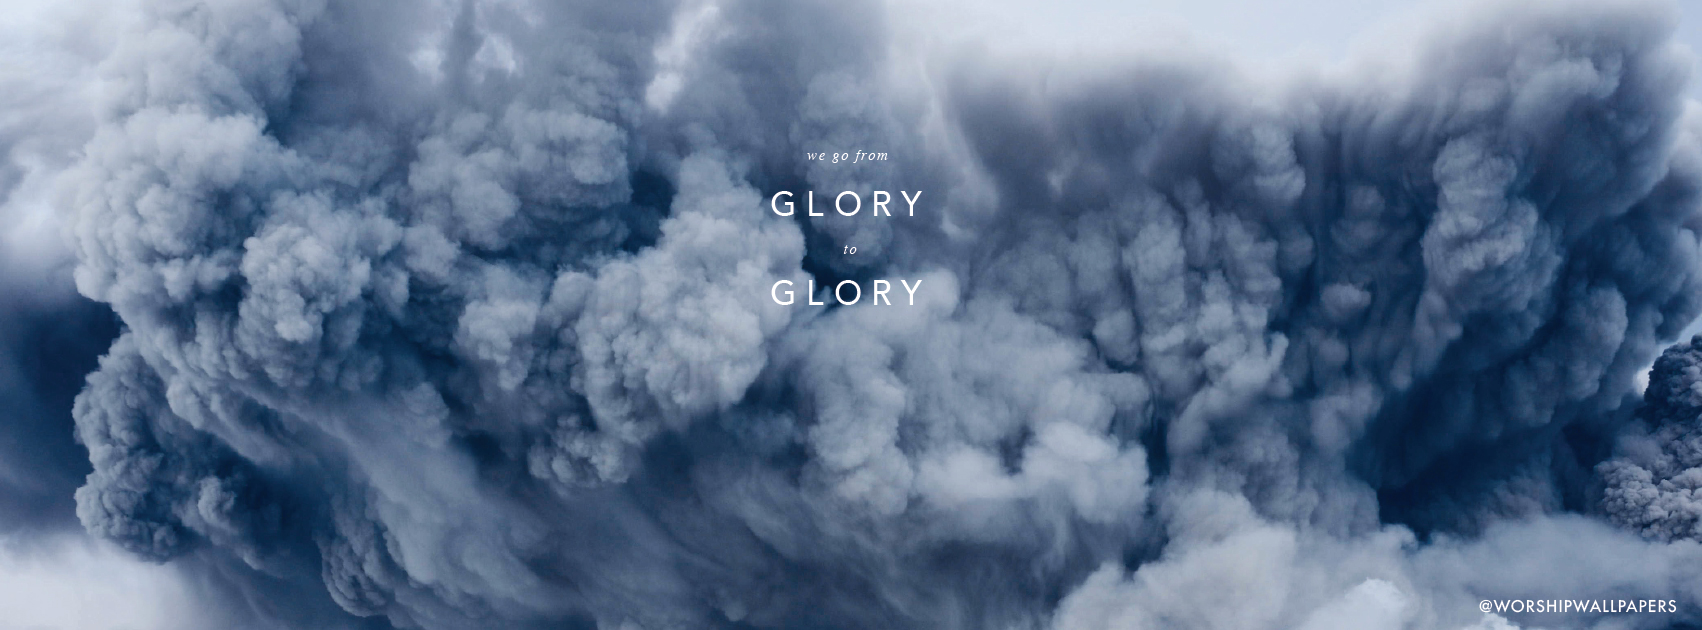 Bible Quotes Wallpaper Download Glory To Glory William Matthews Amp Bethel Music